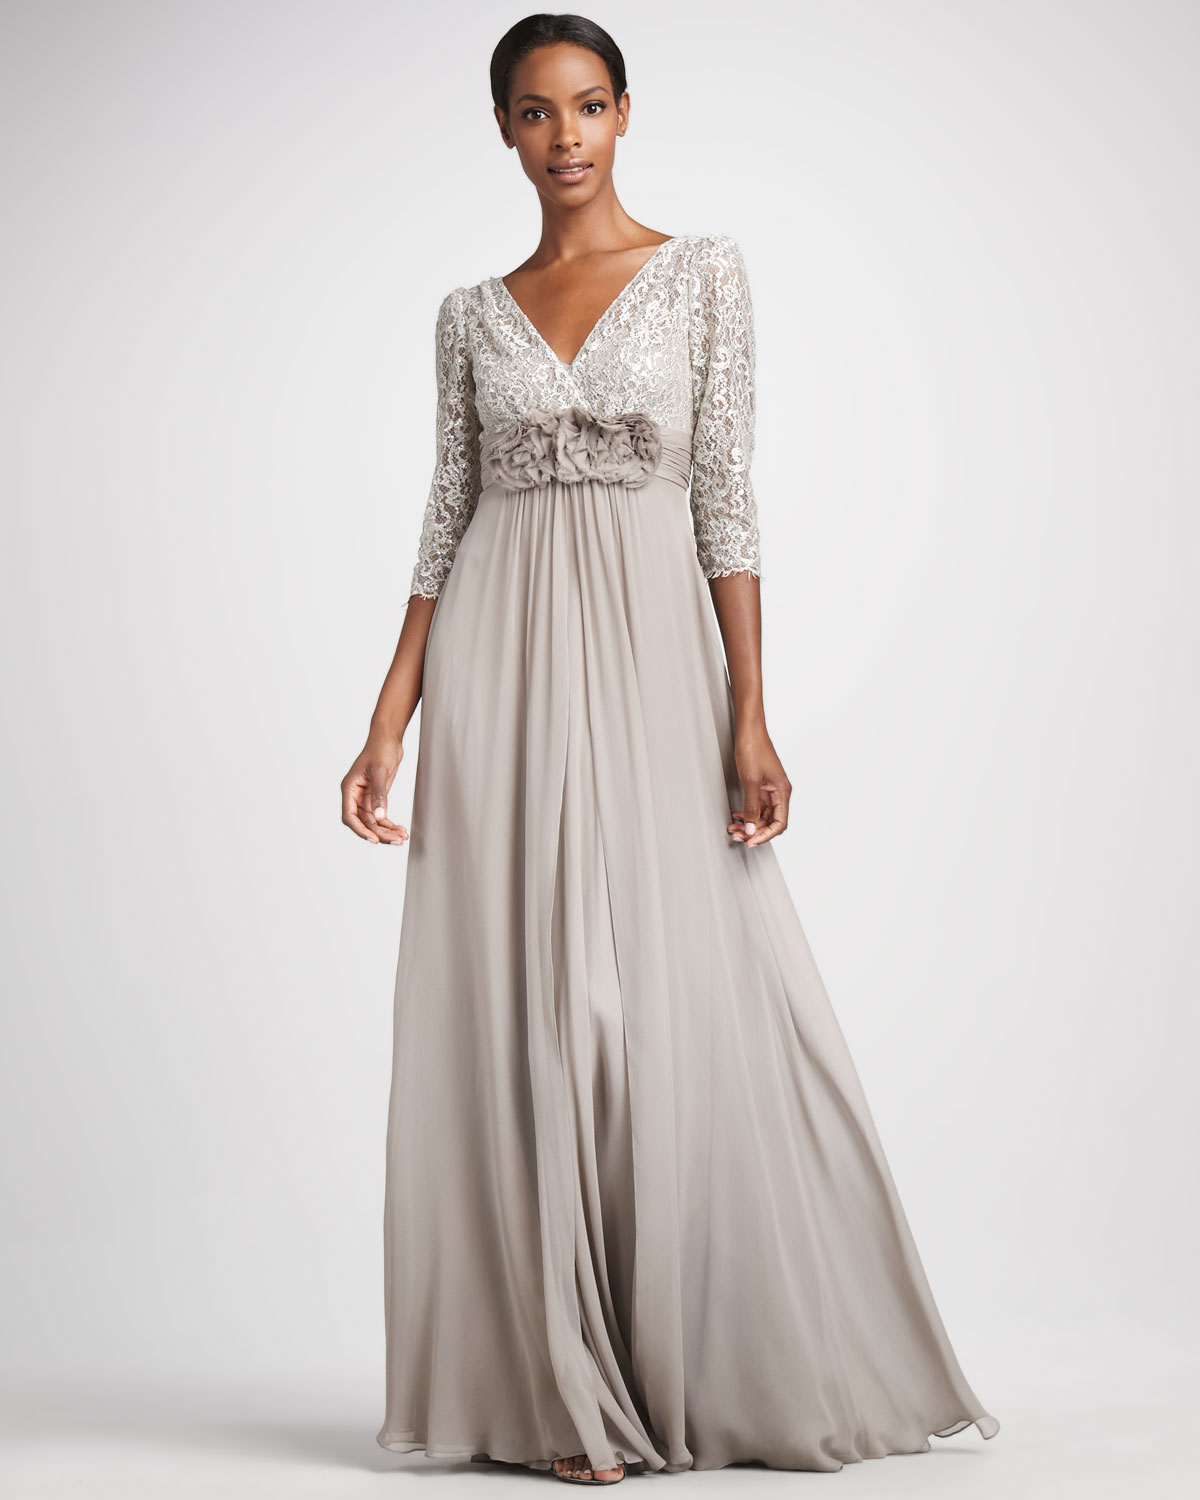 Teri jon Metallic Lace Chiffon Gown in Metallic | Lyst